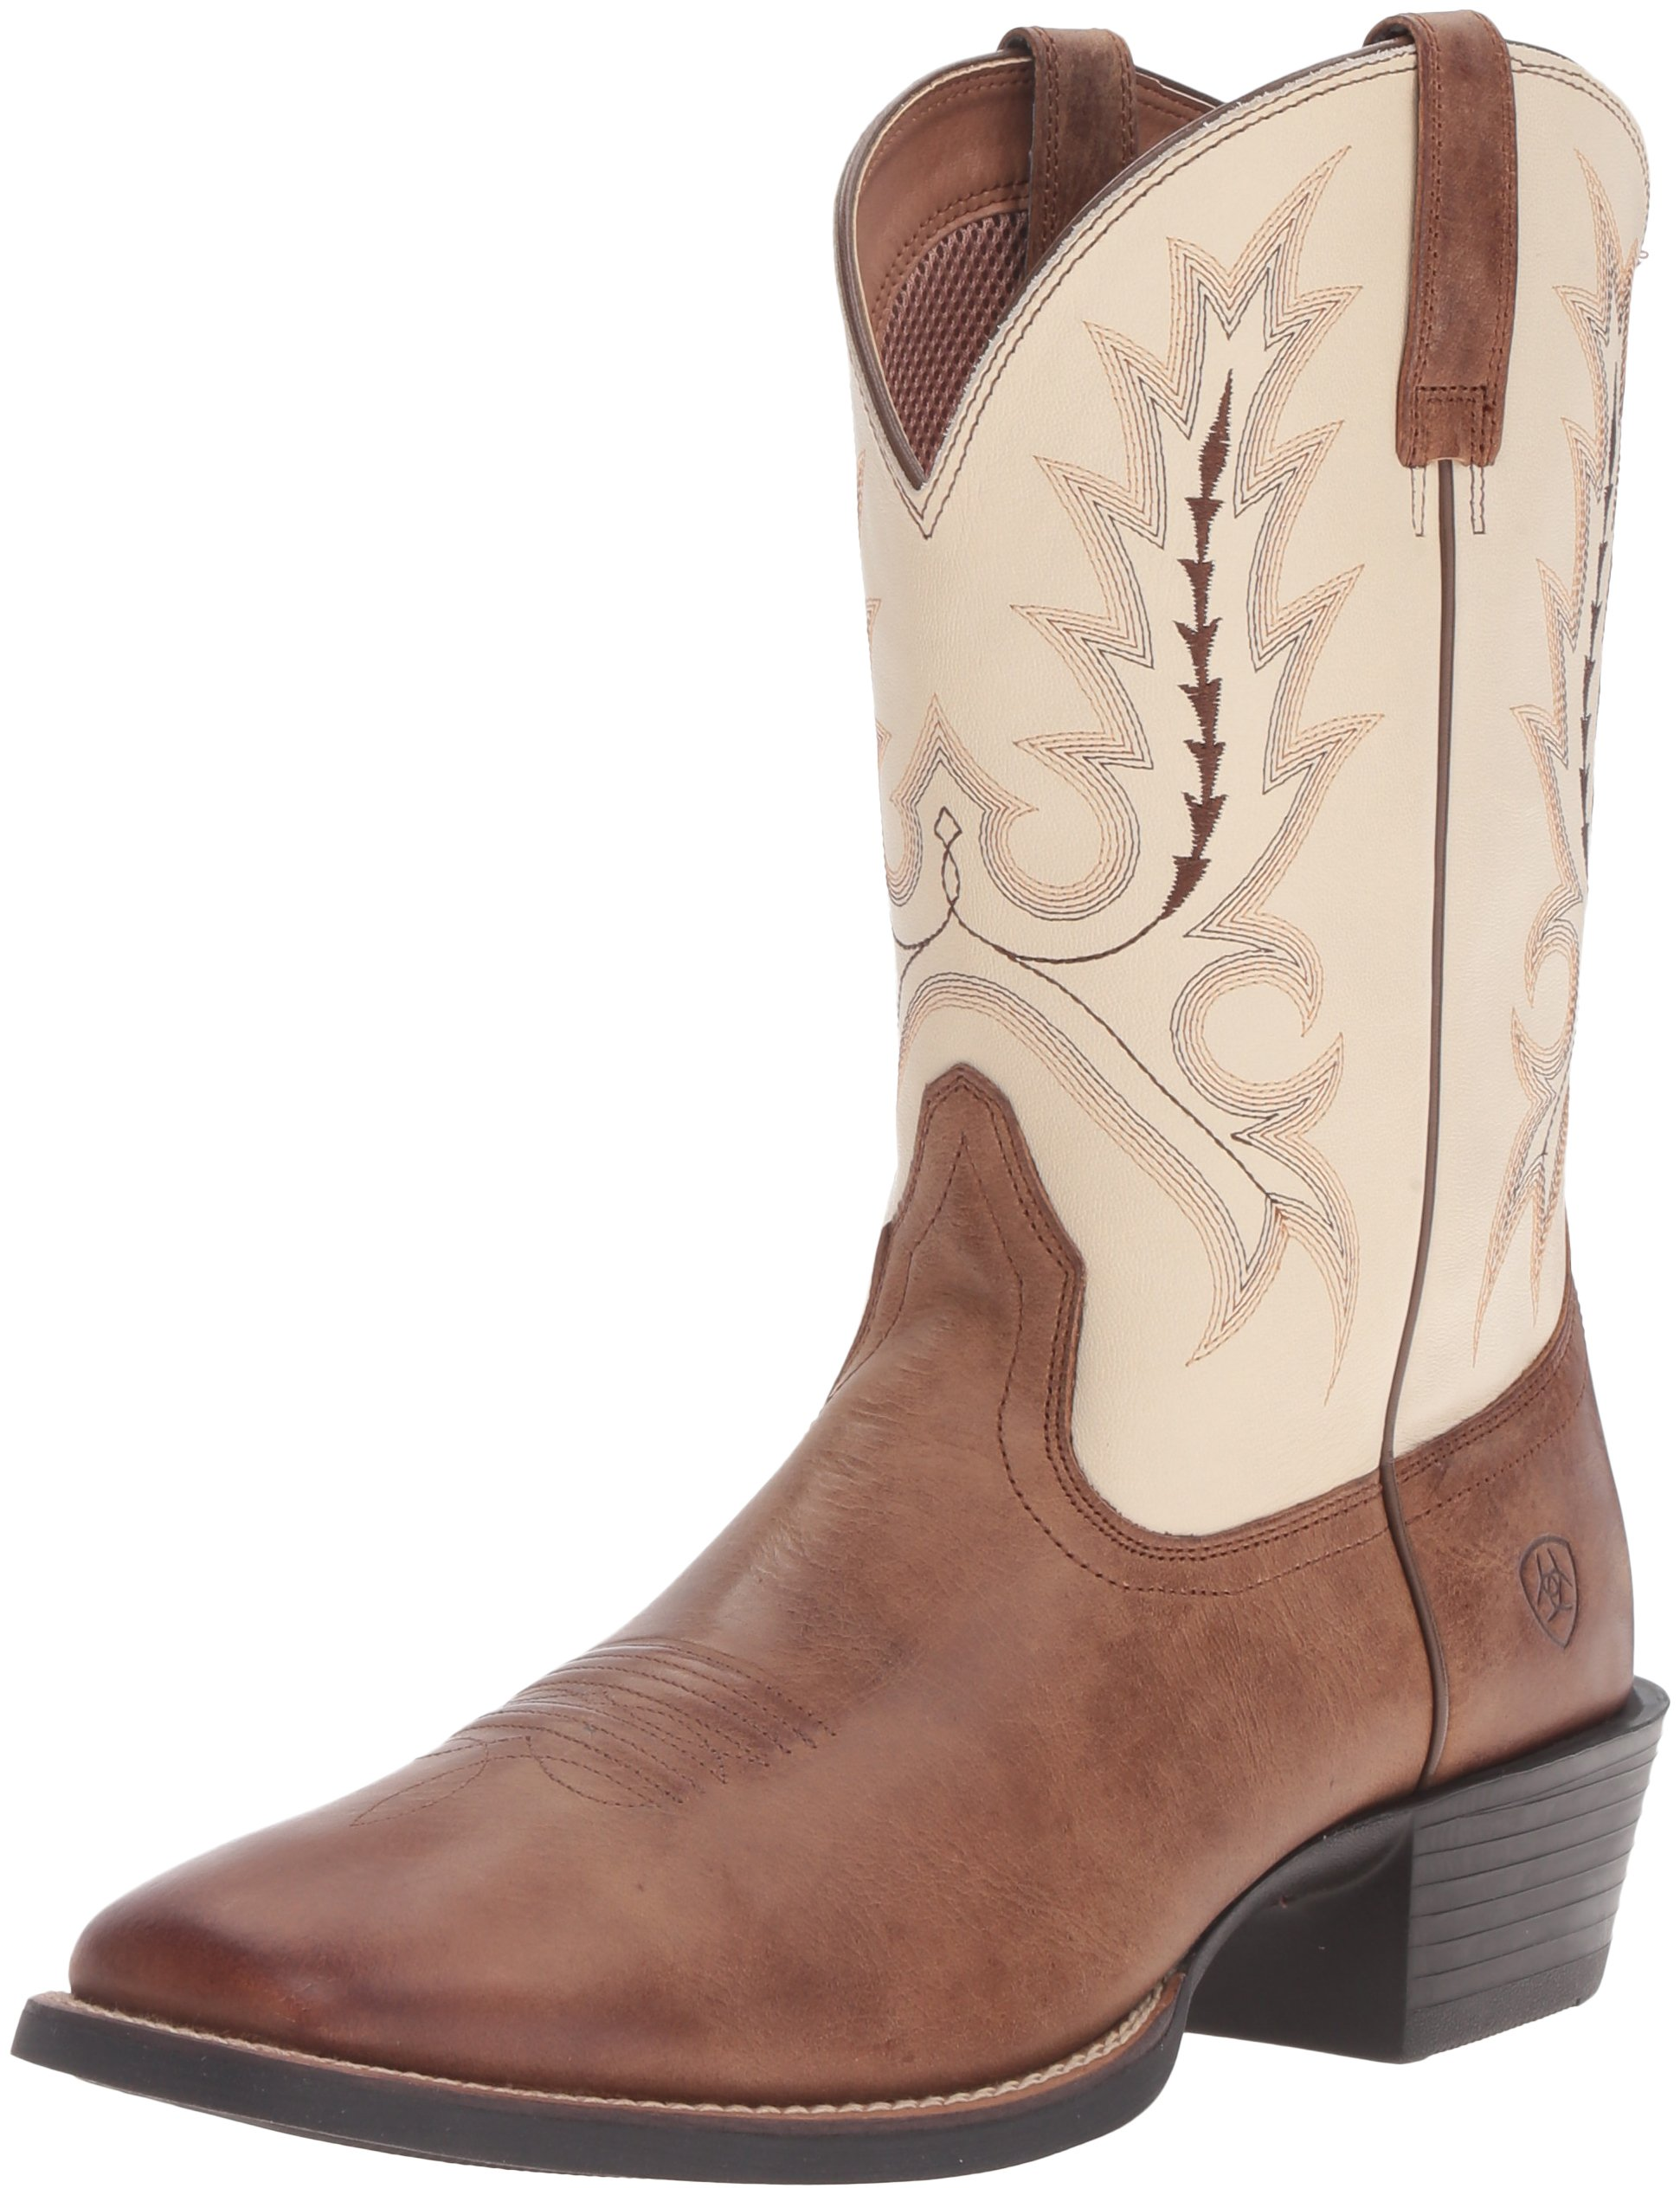 Ariat Men's Sport Outfitter Western Cowboy Boot, Burro Brown, 9 D US